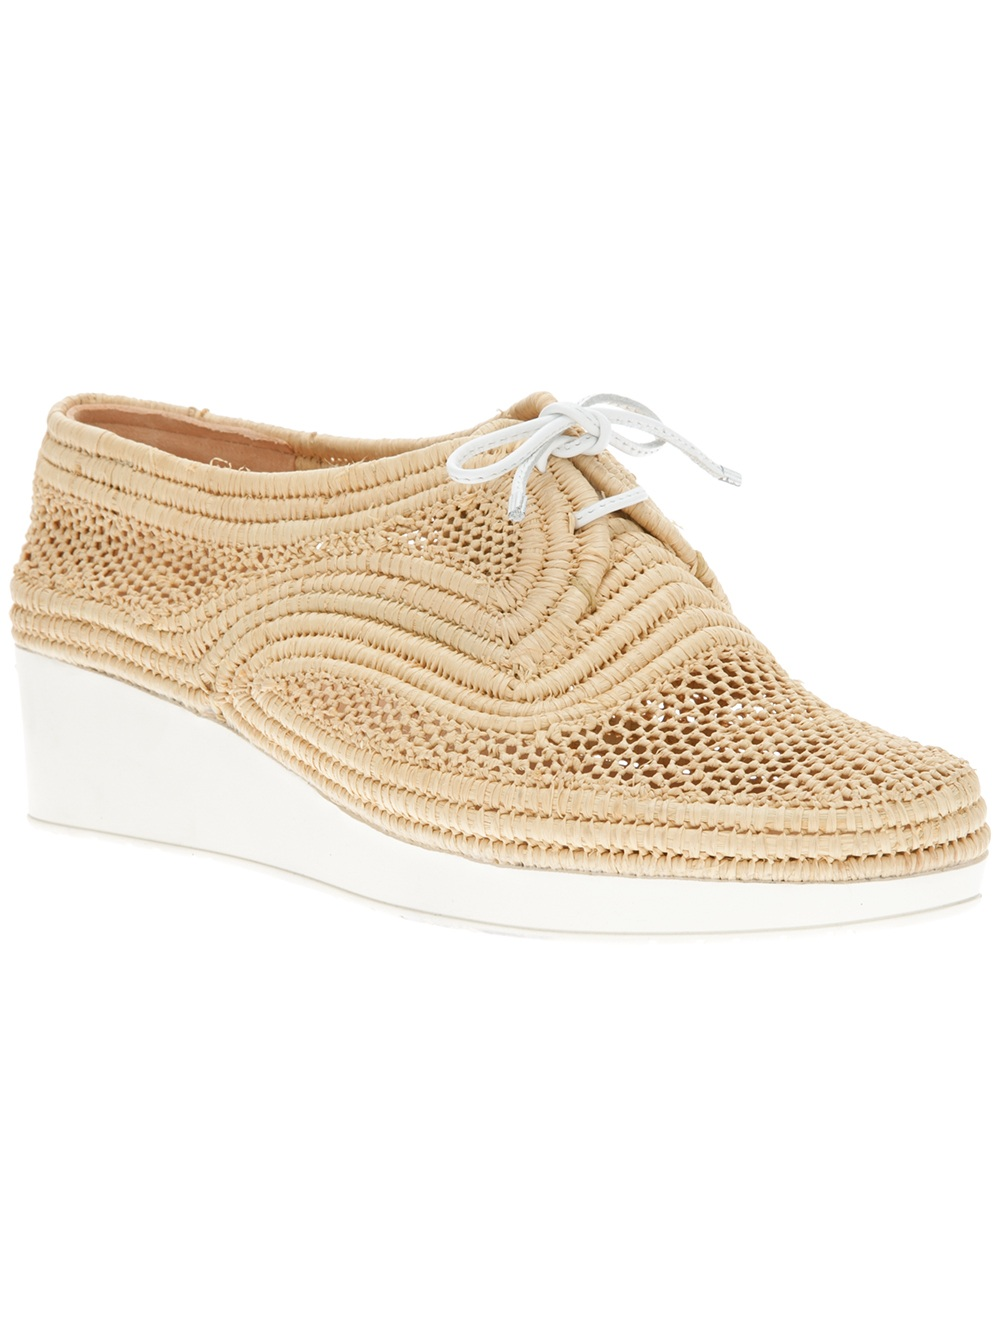 robert clergerie vicole wedge lace up shoe in beige